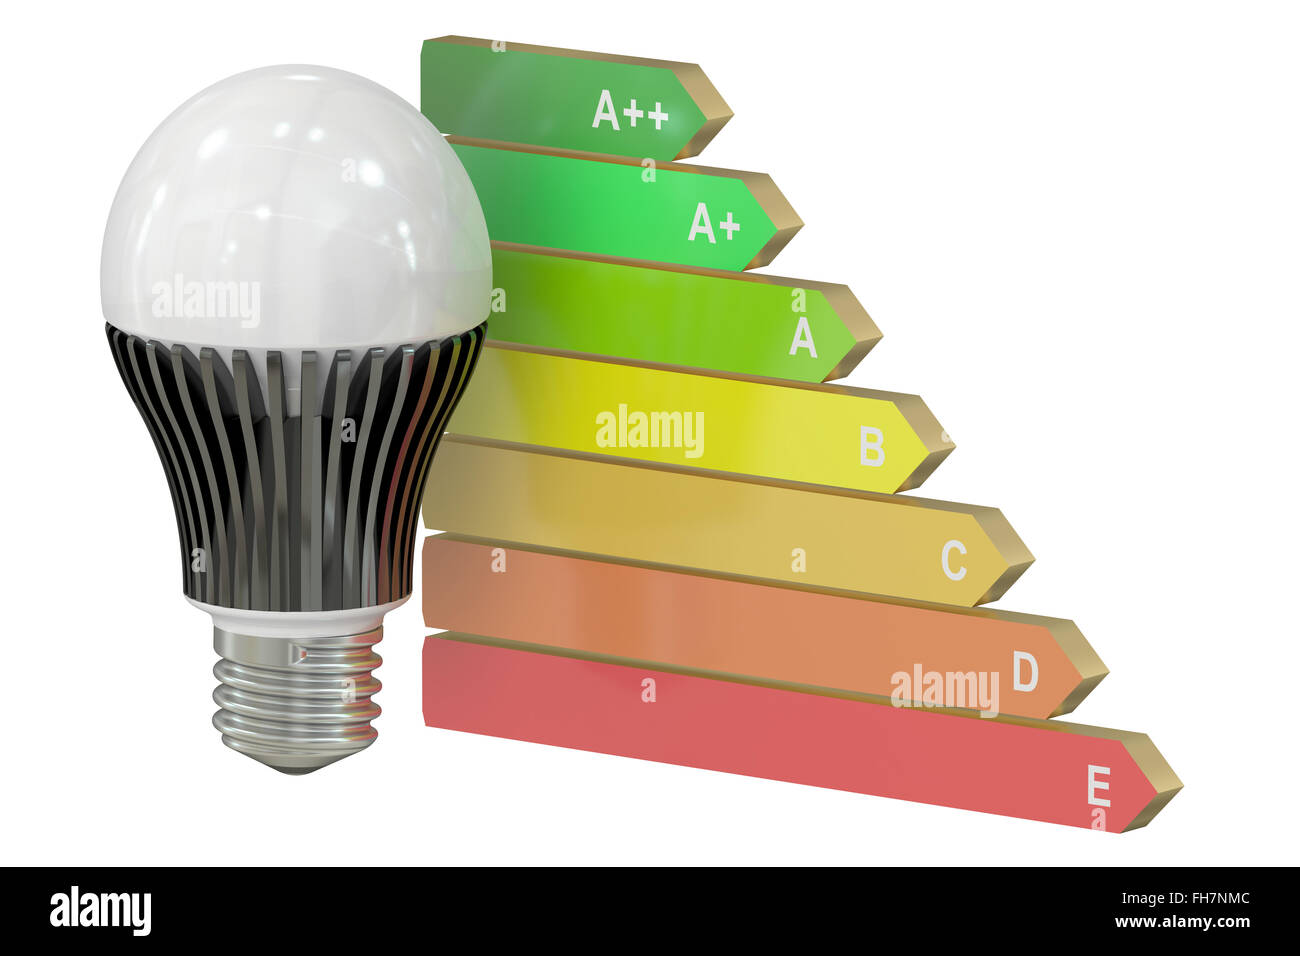 hight resolution of energy efficiency chart with led lamp concept isolated on white background